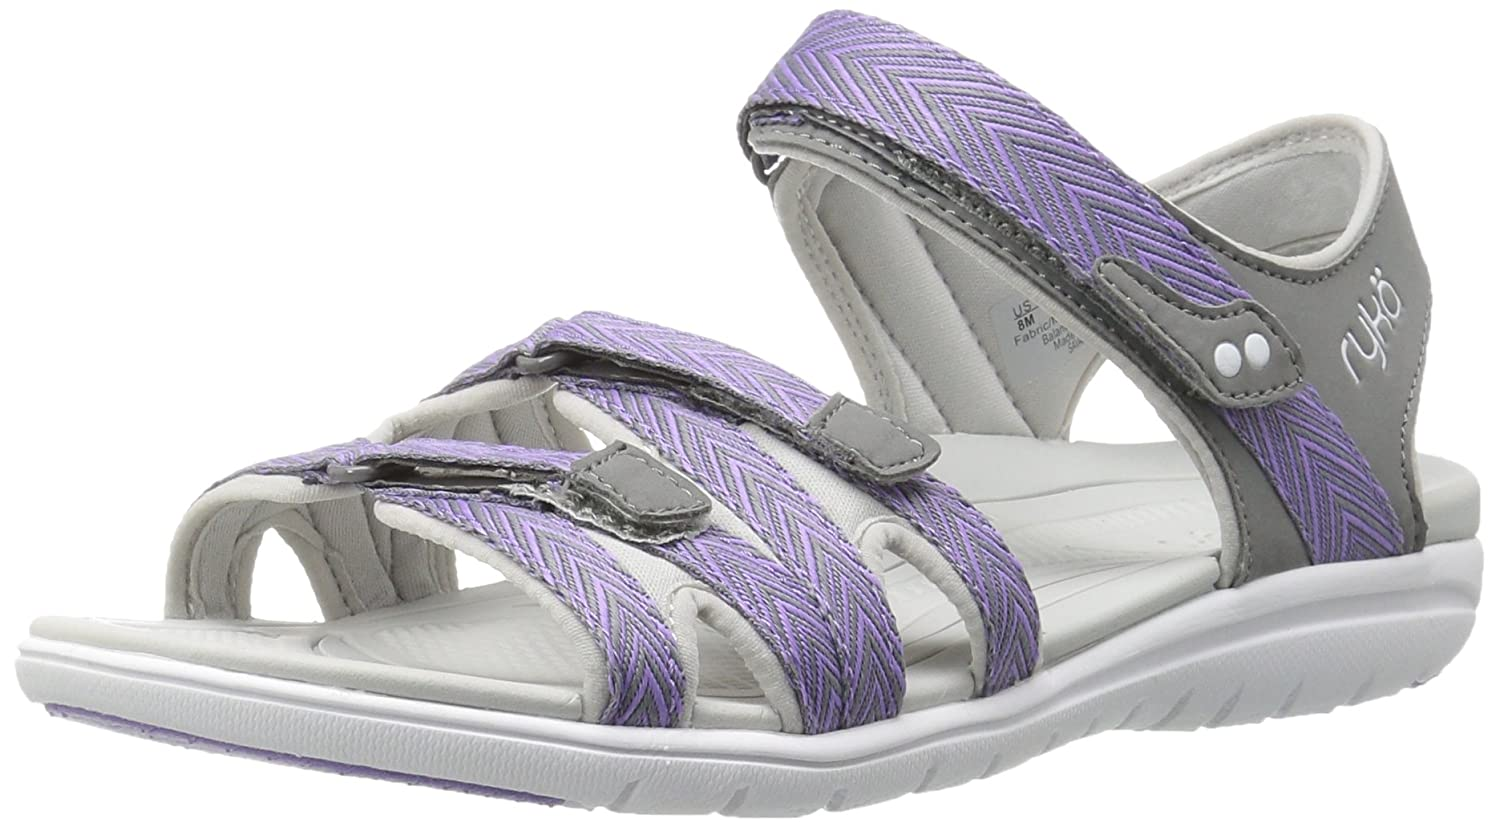 Ryka Women's Savannah Sandal B01KWH6JU0 8.5 B(M) US|Grey/Purpl